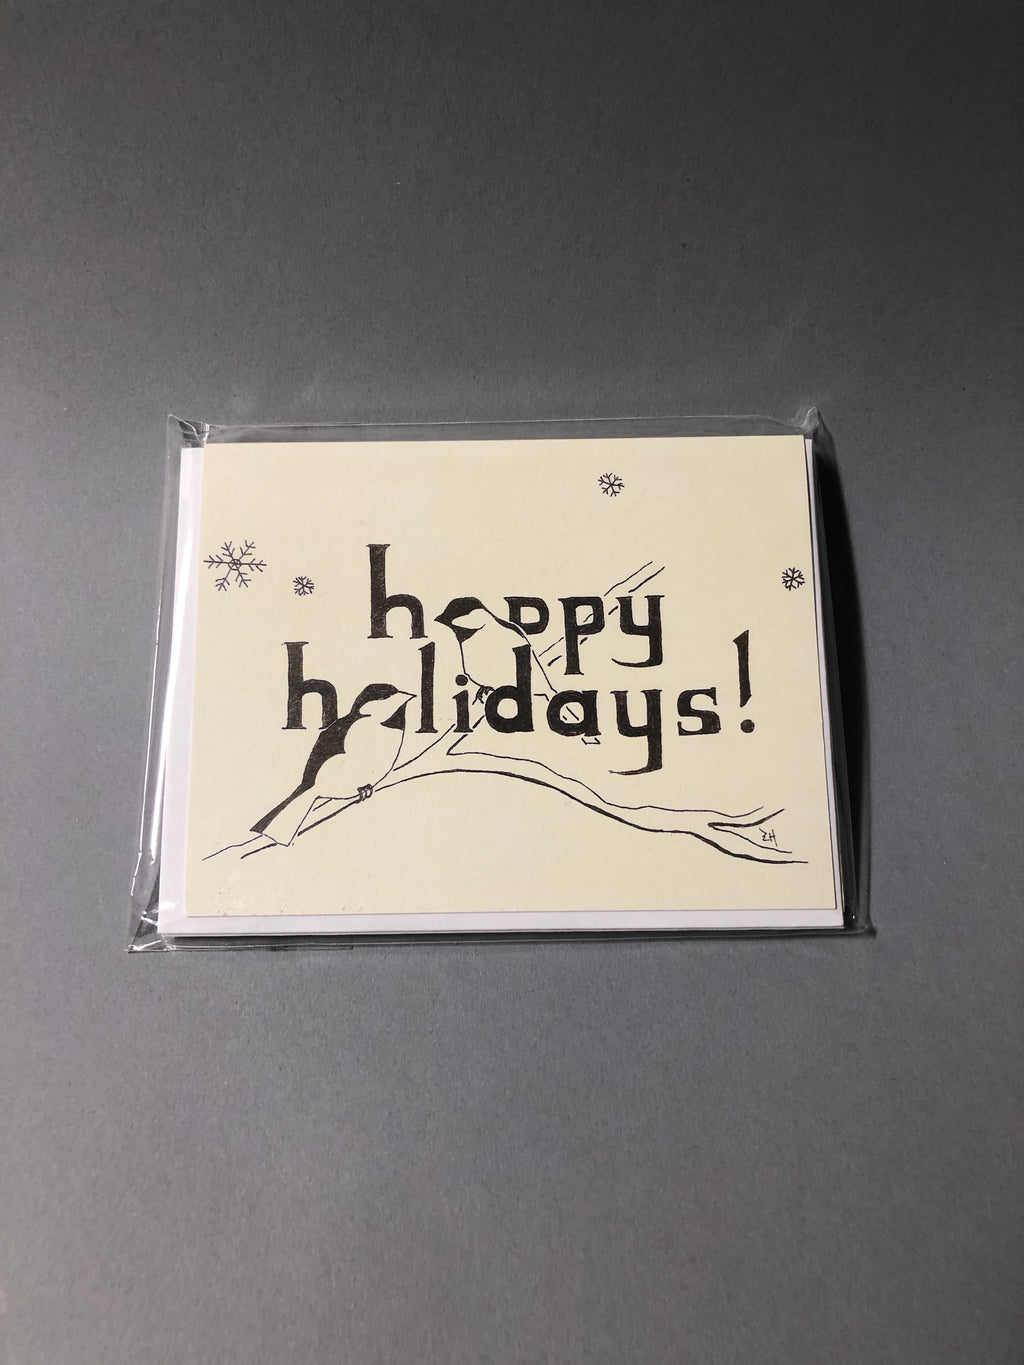 Holiday Cards by Emily Heron